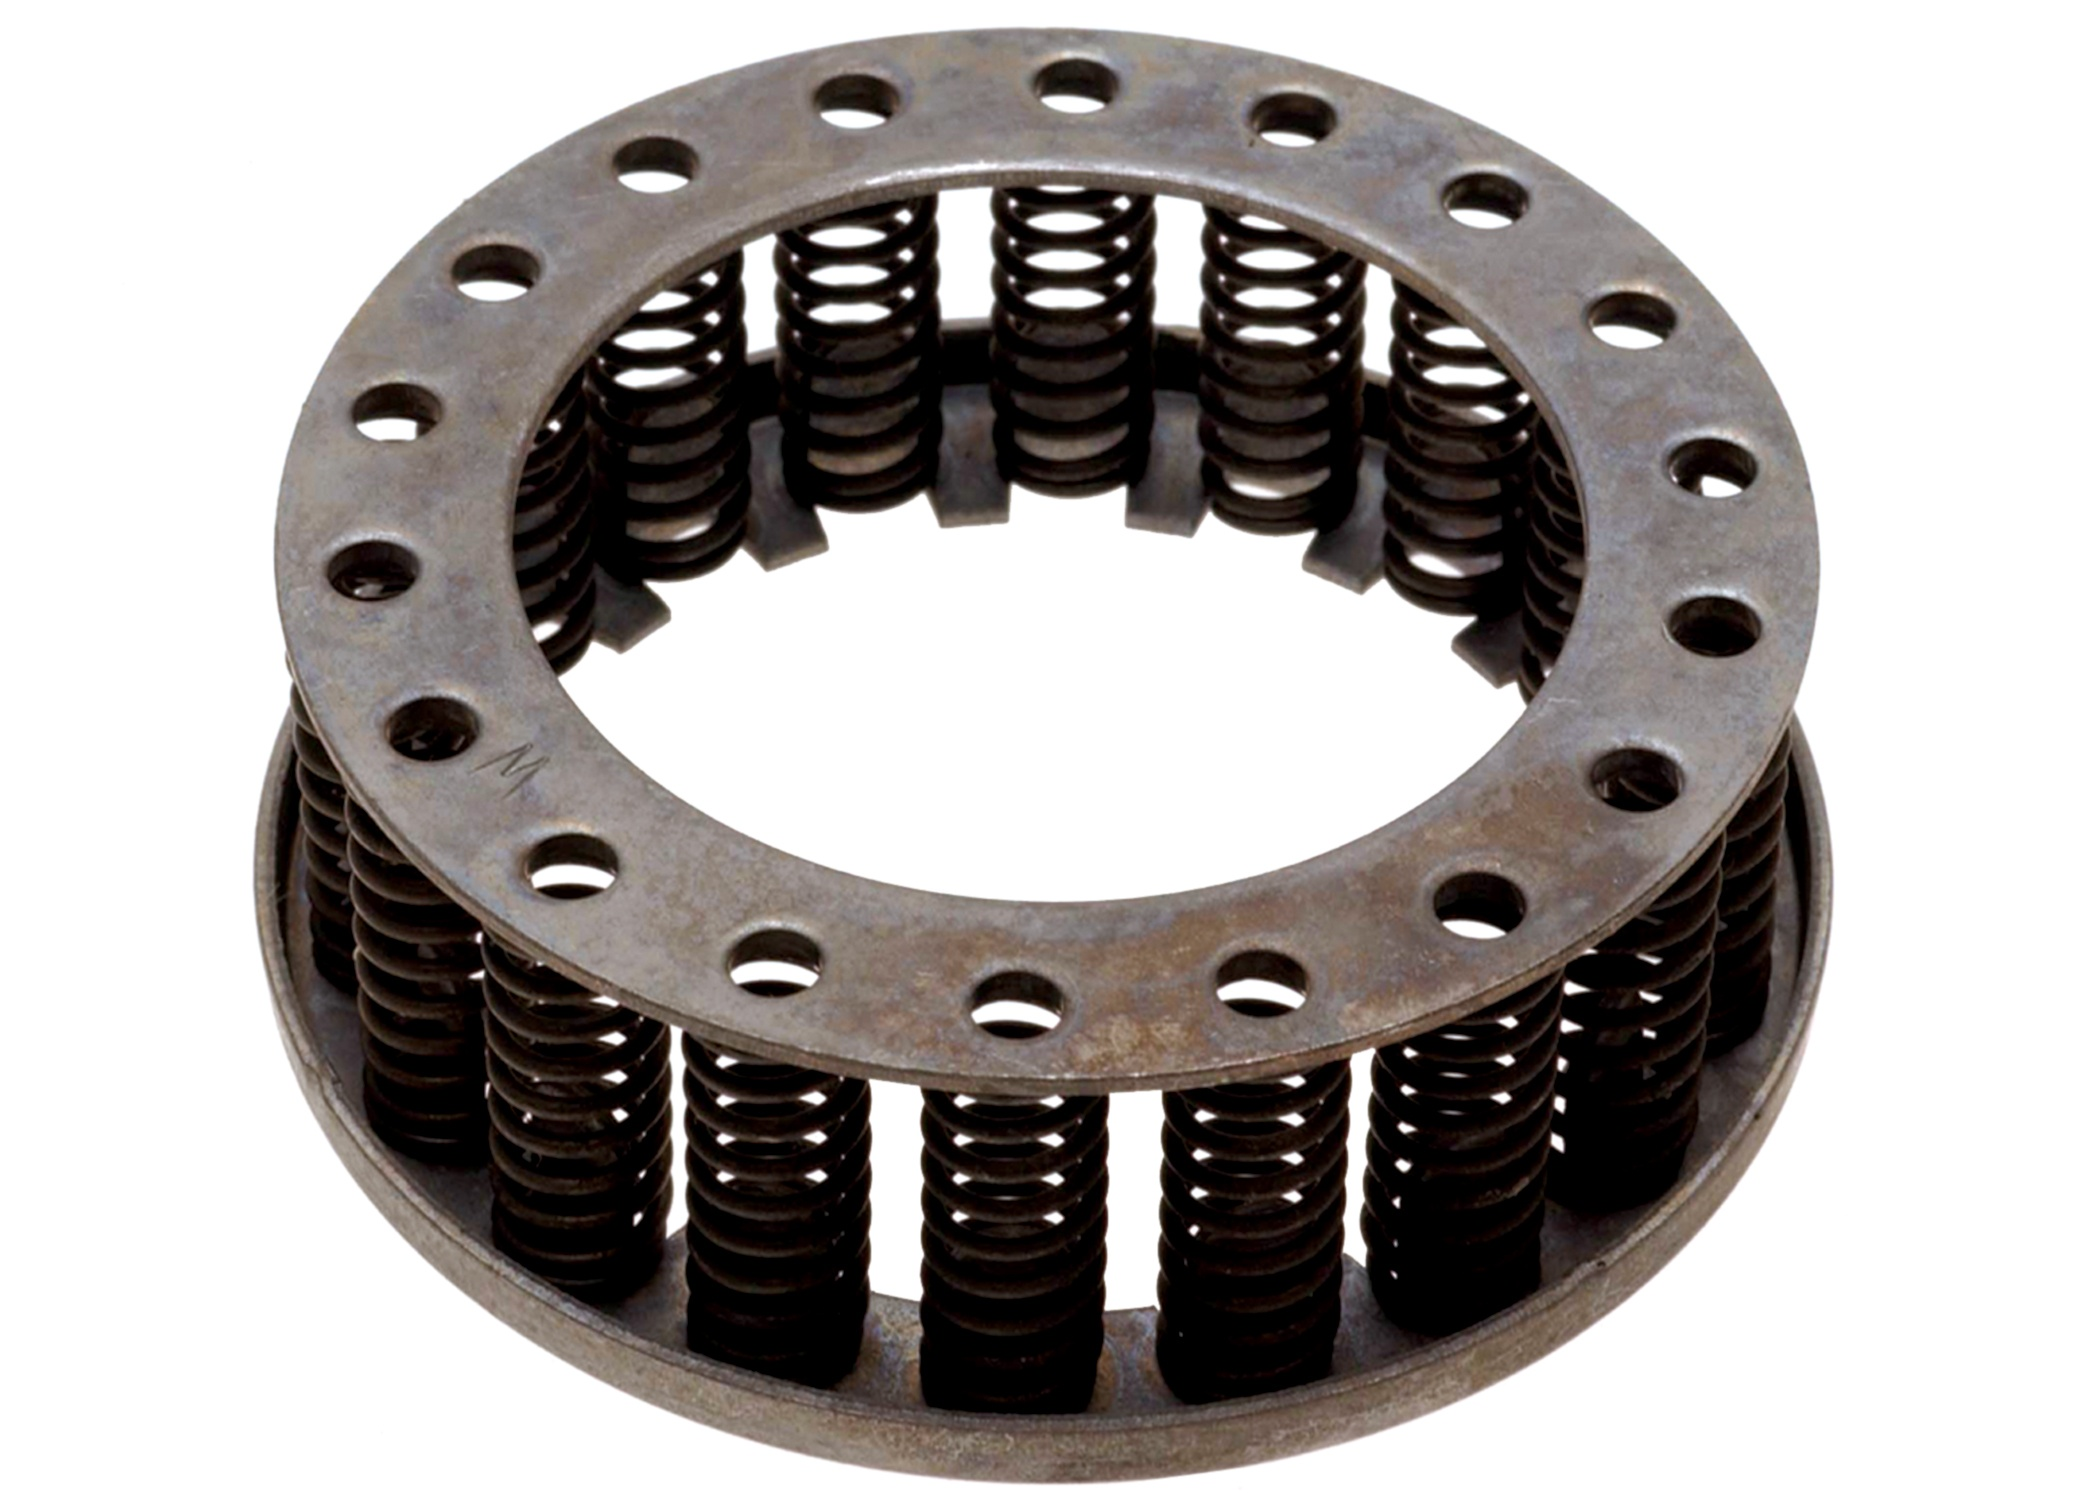 ACDELCO GM ORIGINAL EQUIPMENT - Automatic Transmission Clutch Spring (3rd) - DCB 24203359